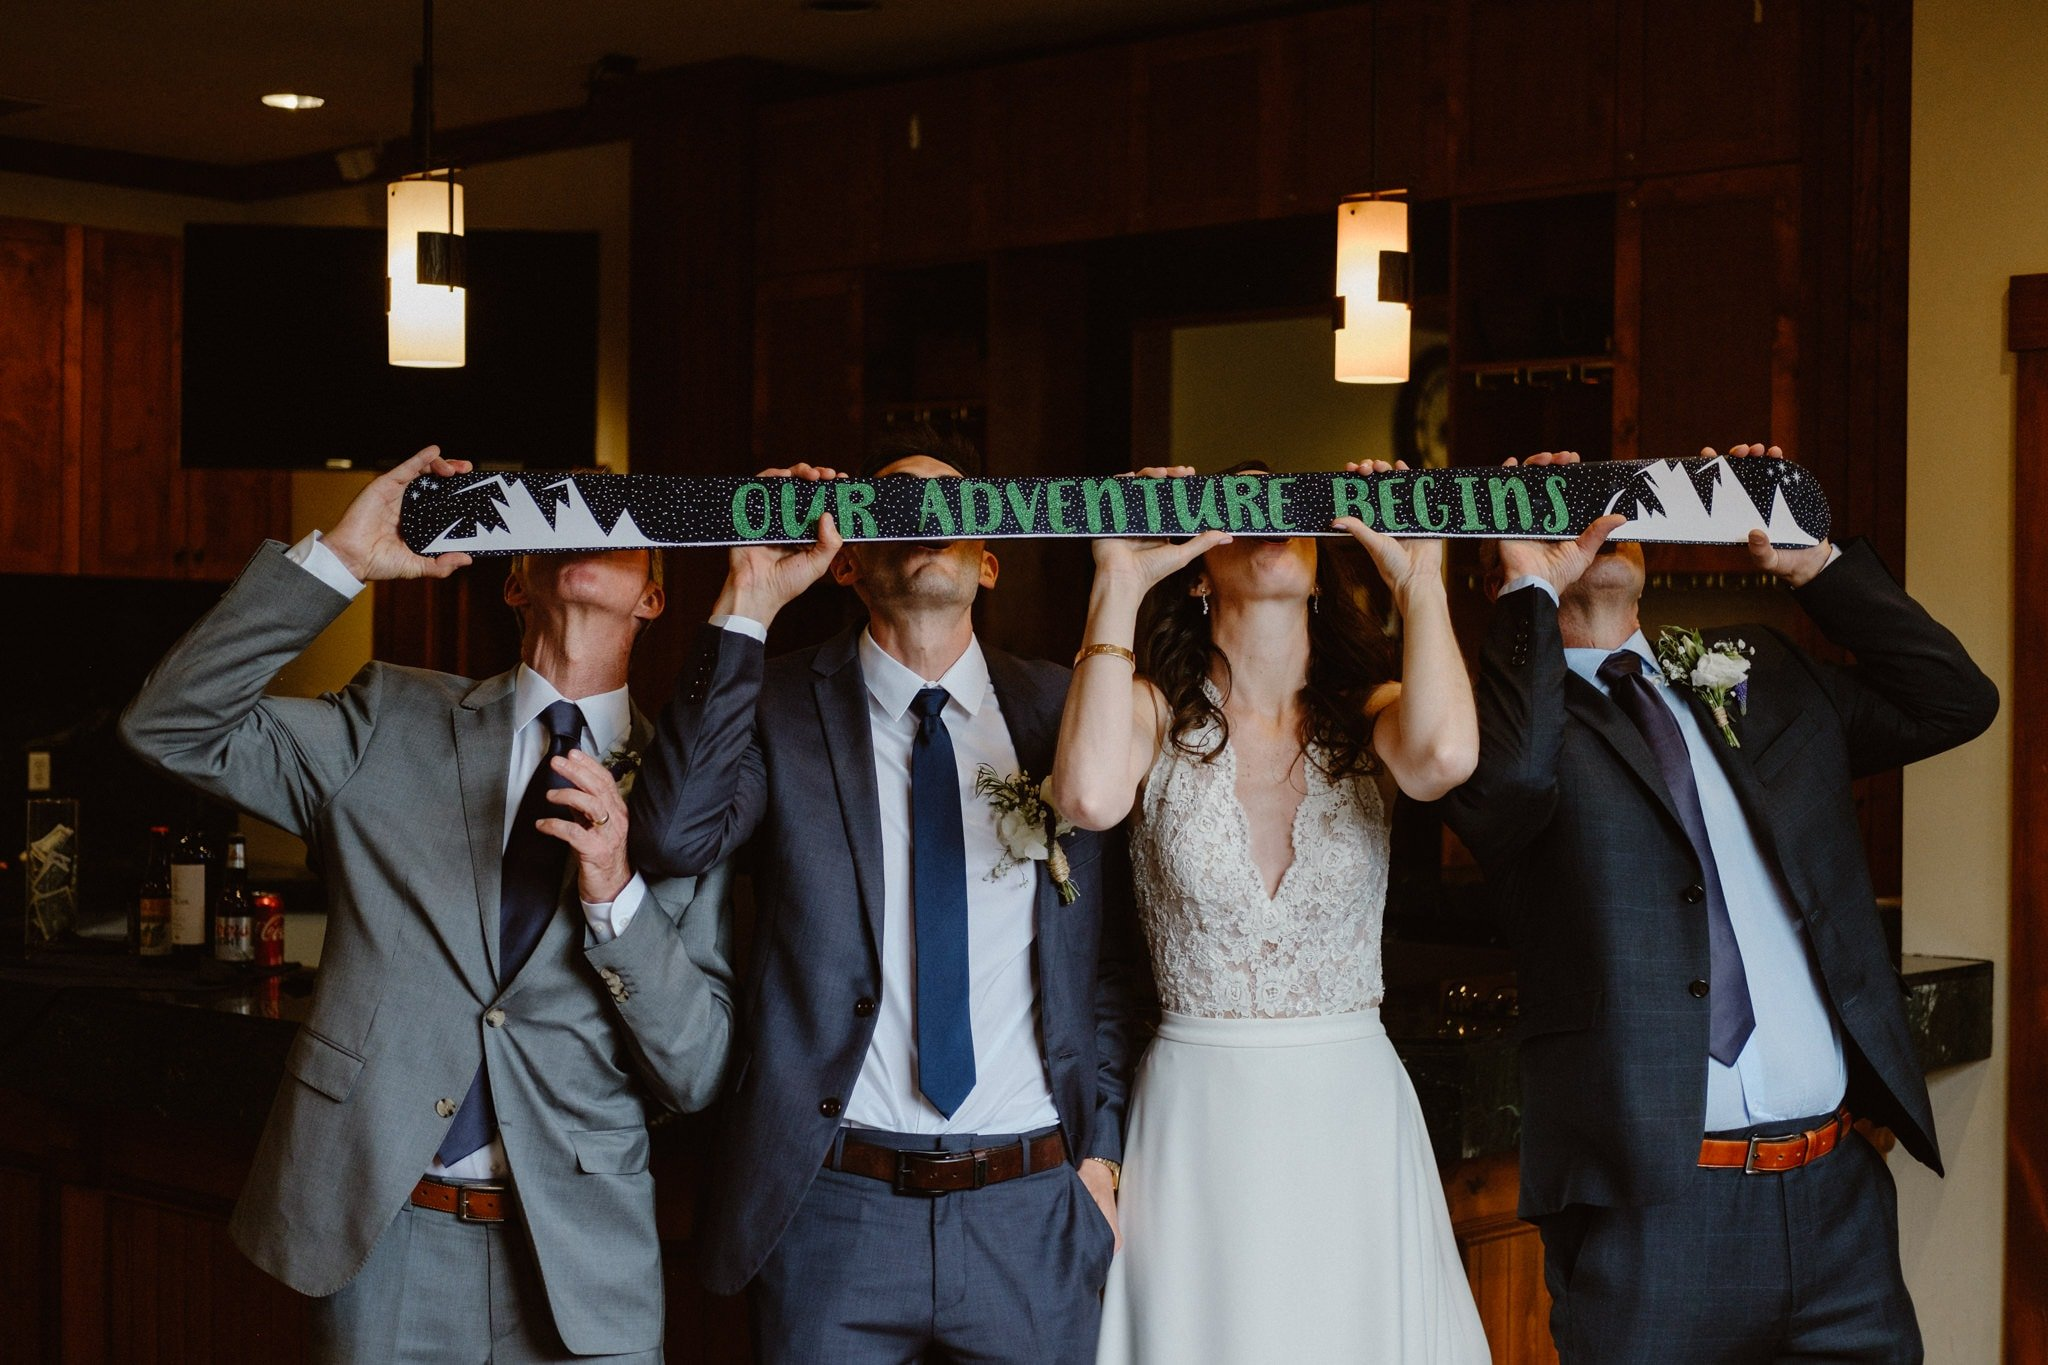 "Bride and groom do shotski that says ""Our adventure begins"" with their dads at Breckenridge wedding, Colorado wedding photographer"